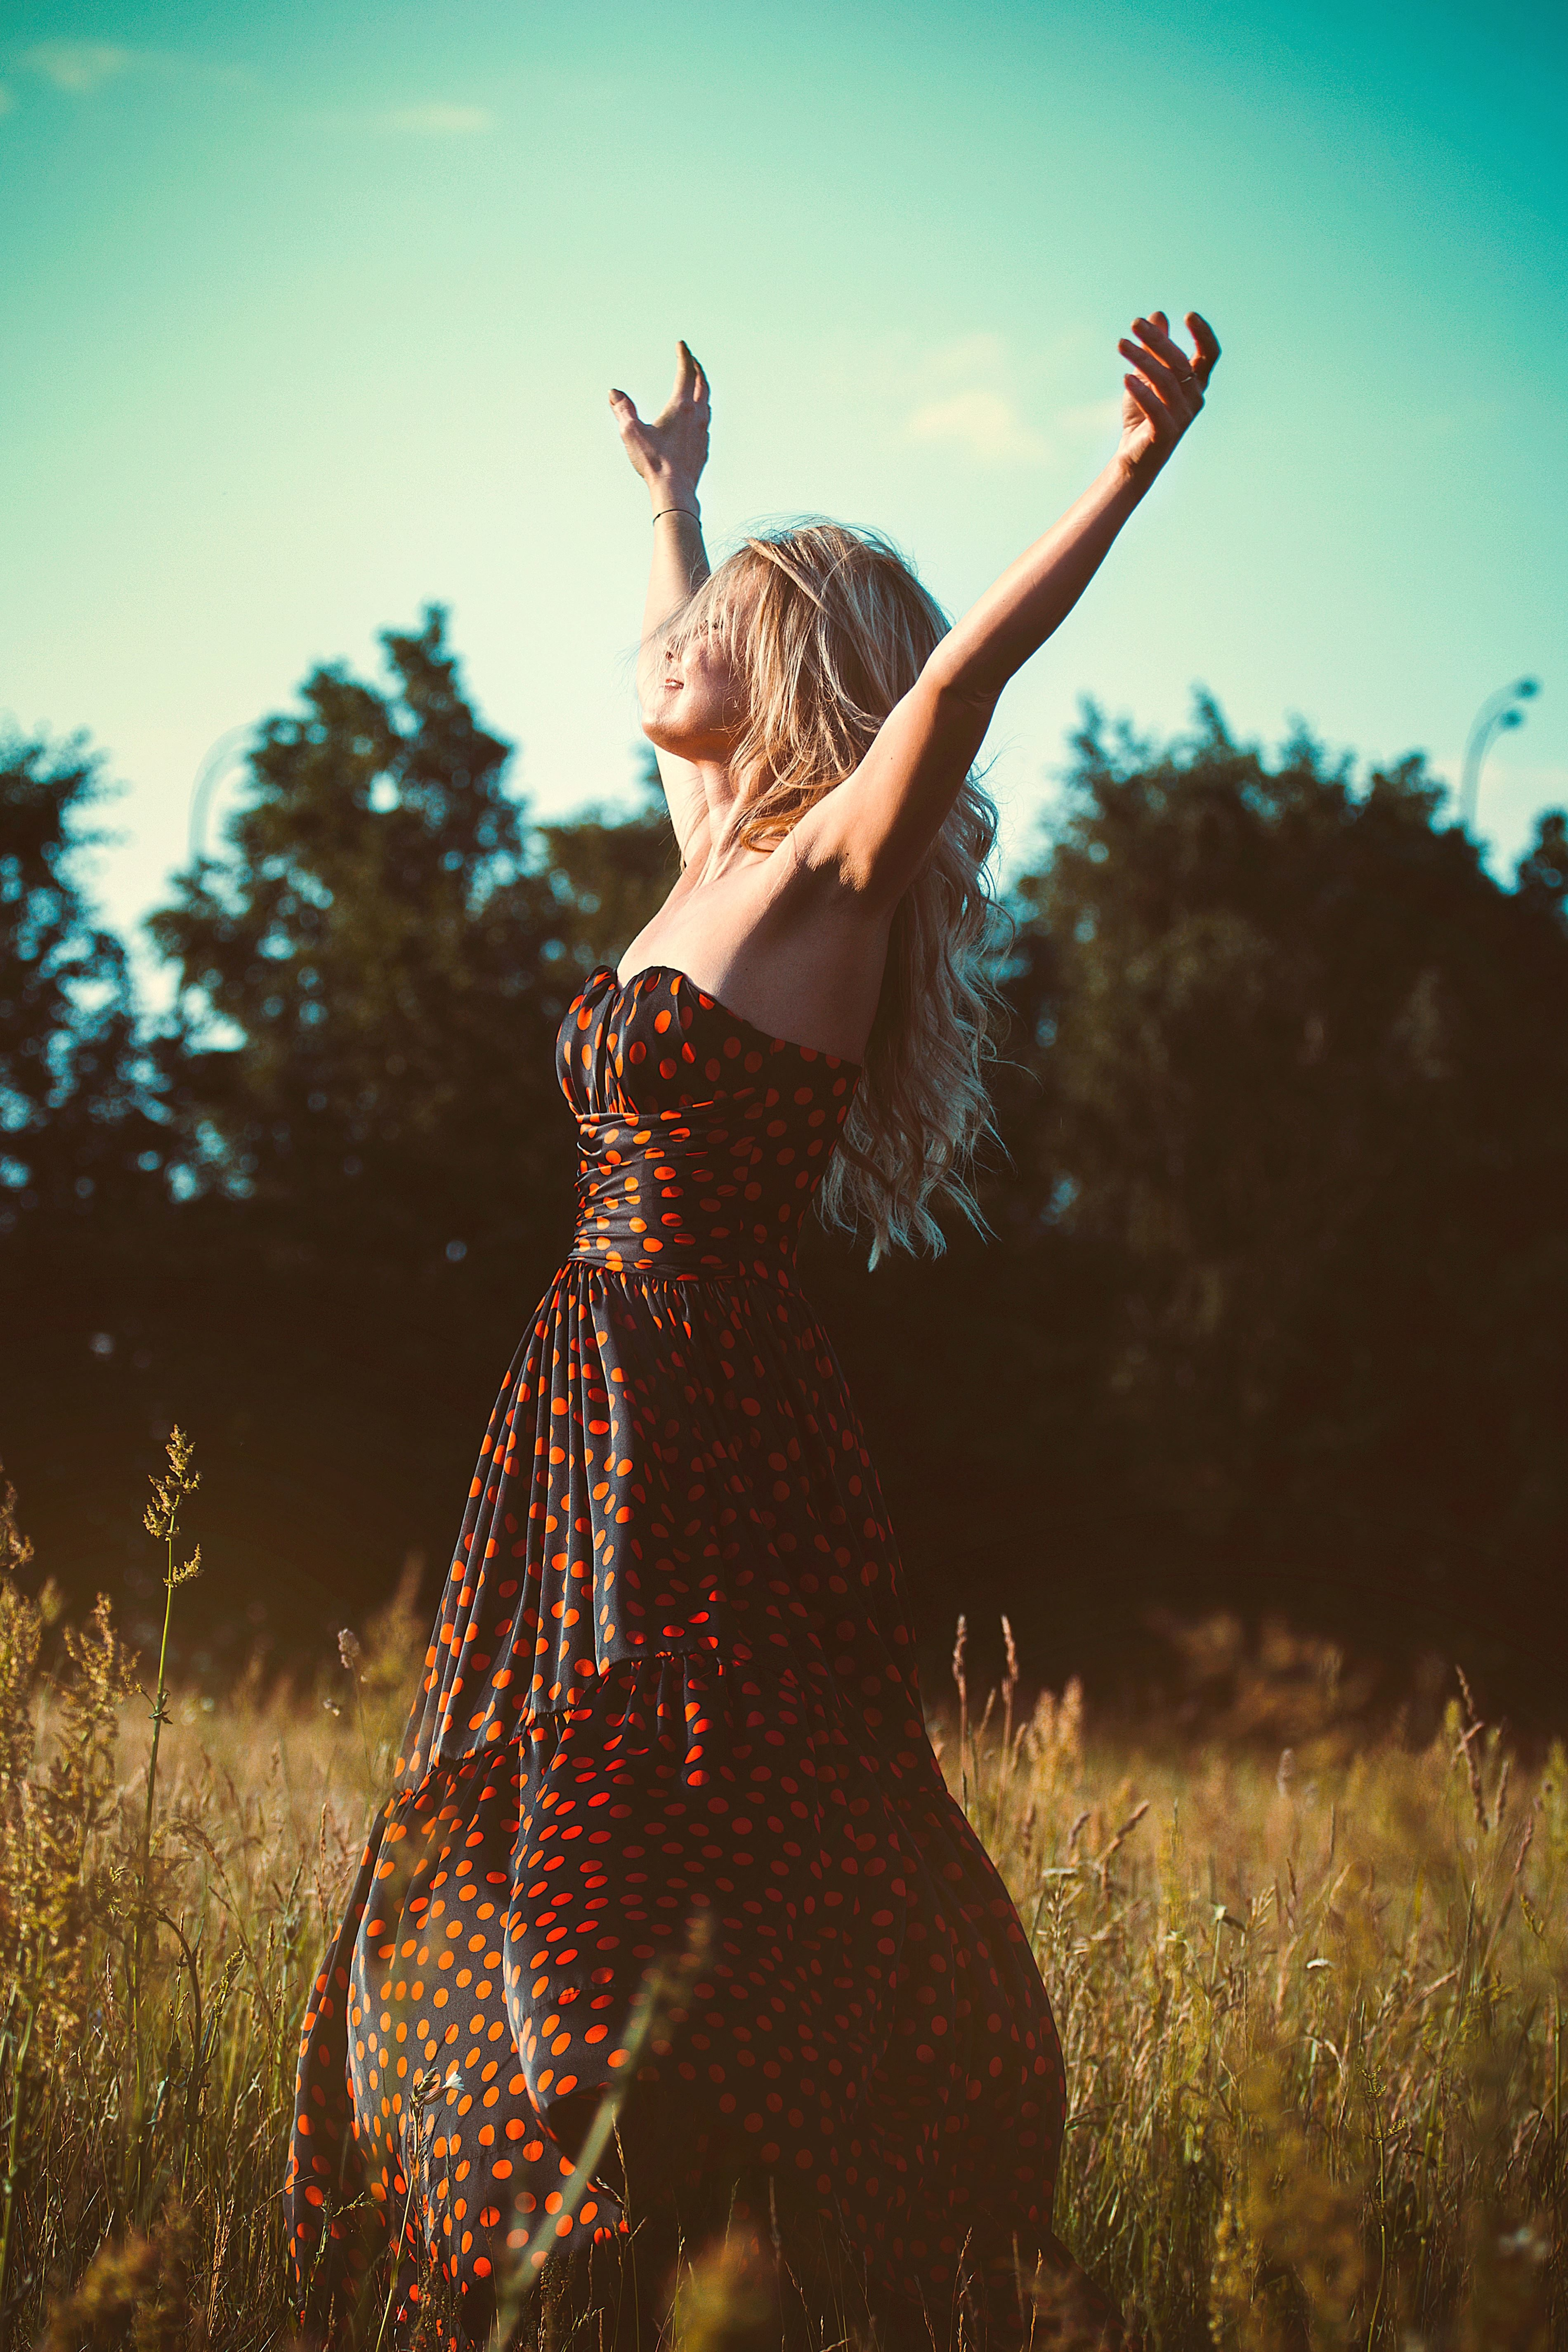 Free picture dress fashion female freedom girl grass